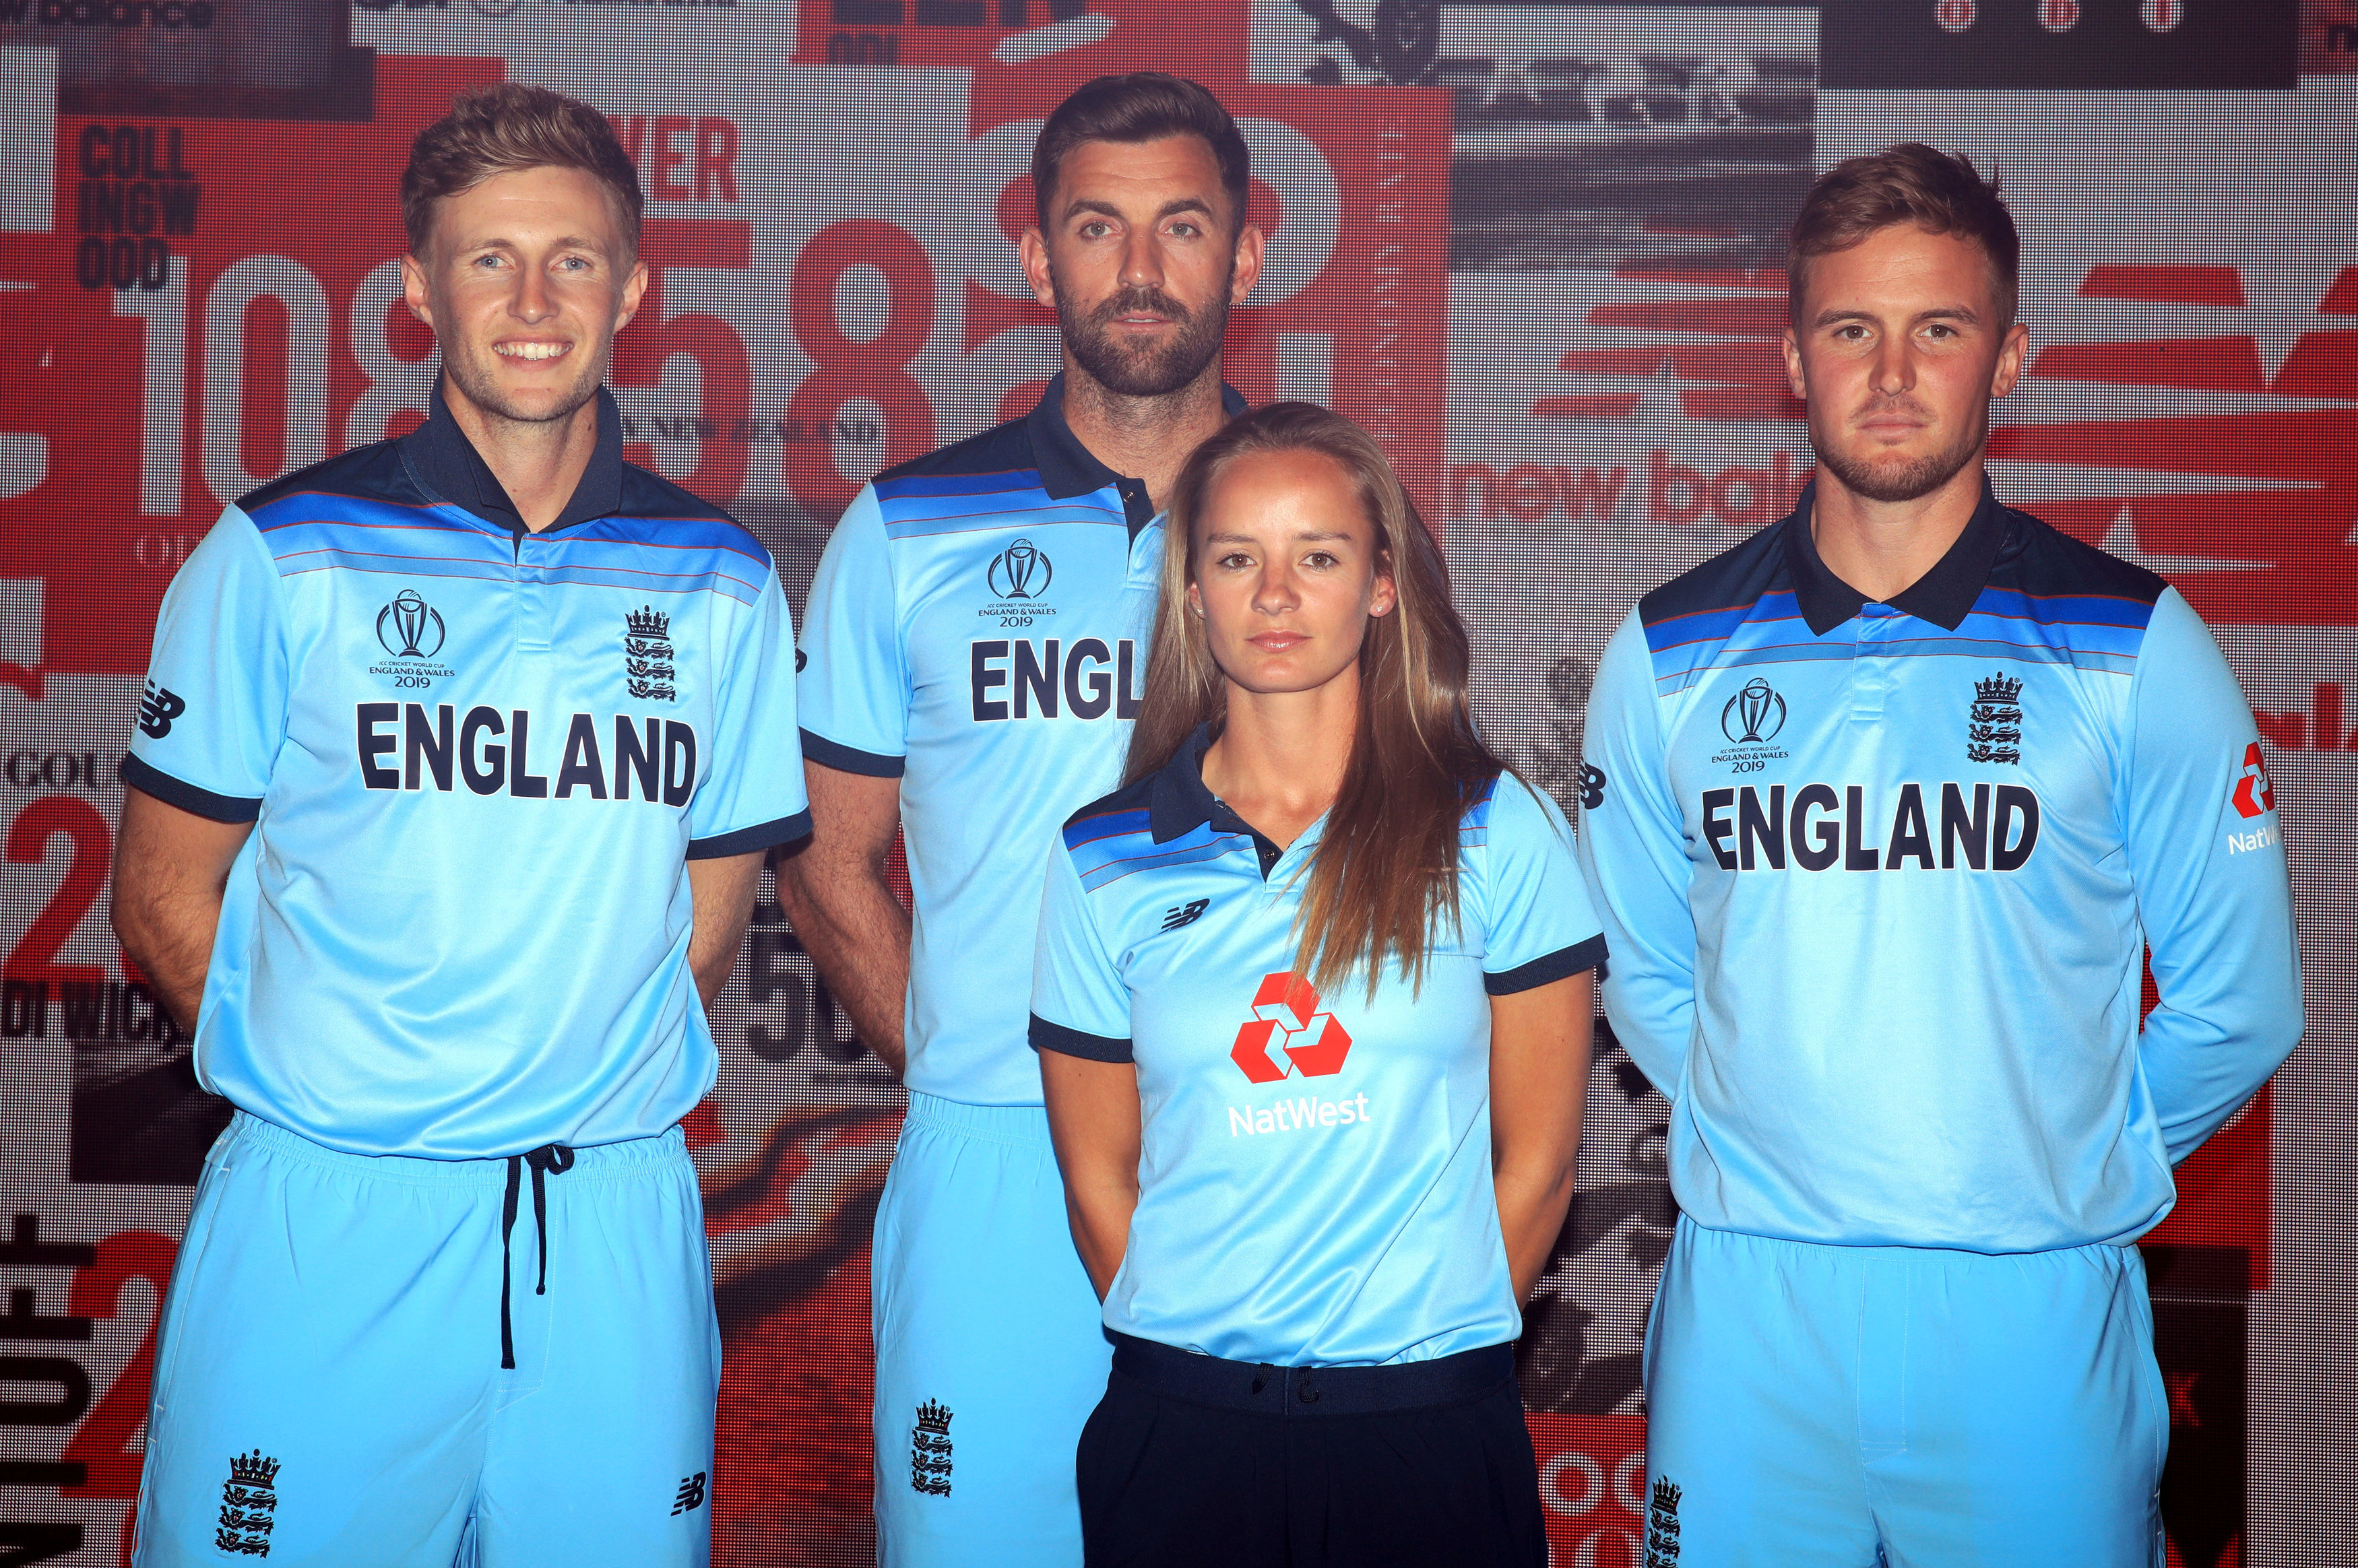 England have unveiled their new World Cup kit